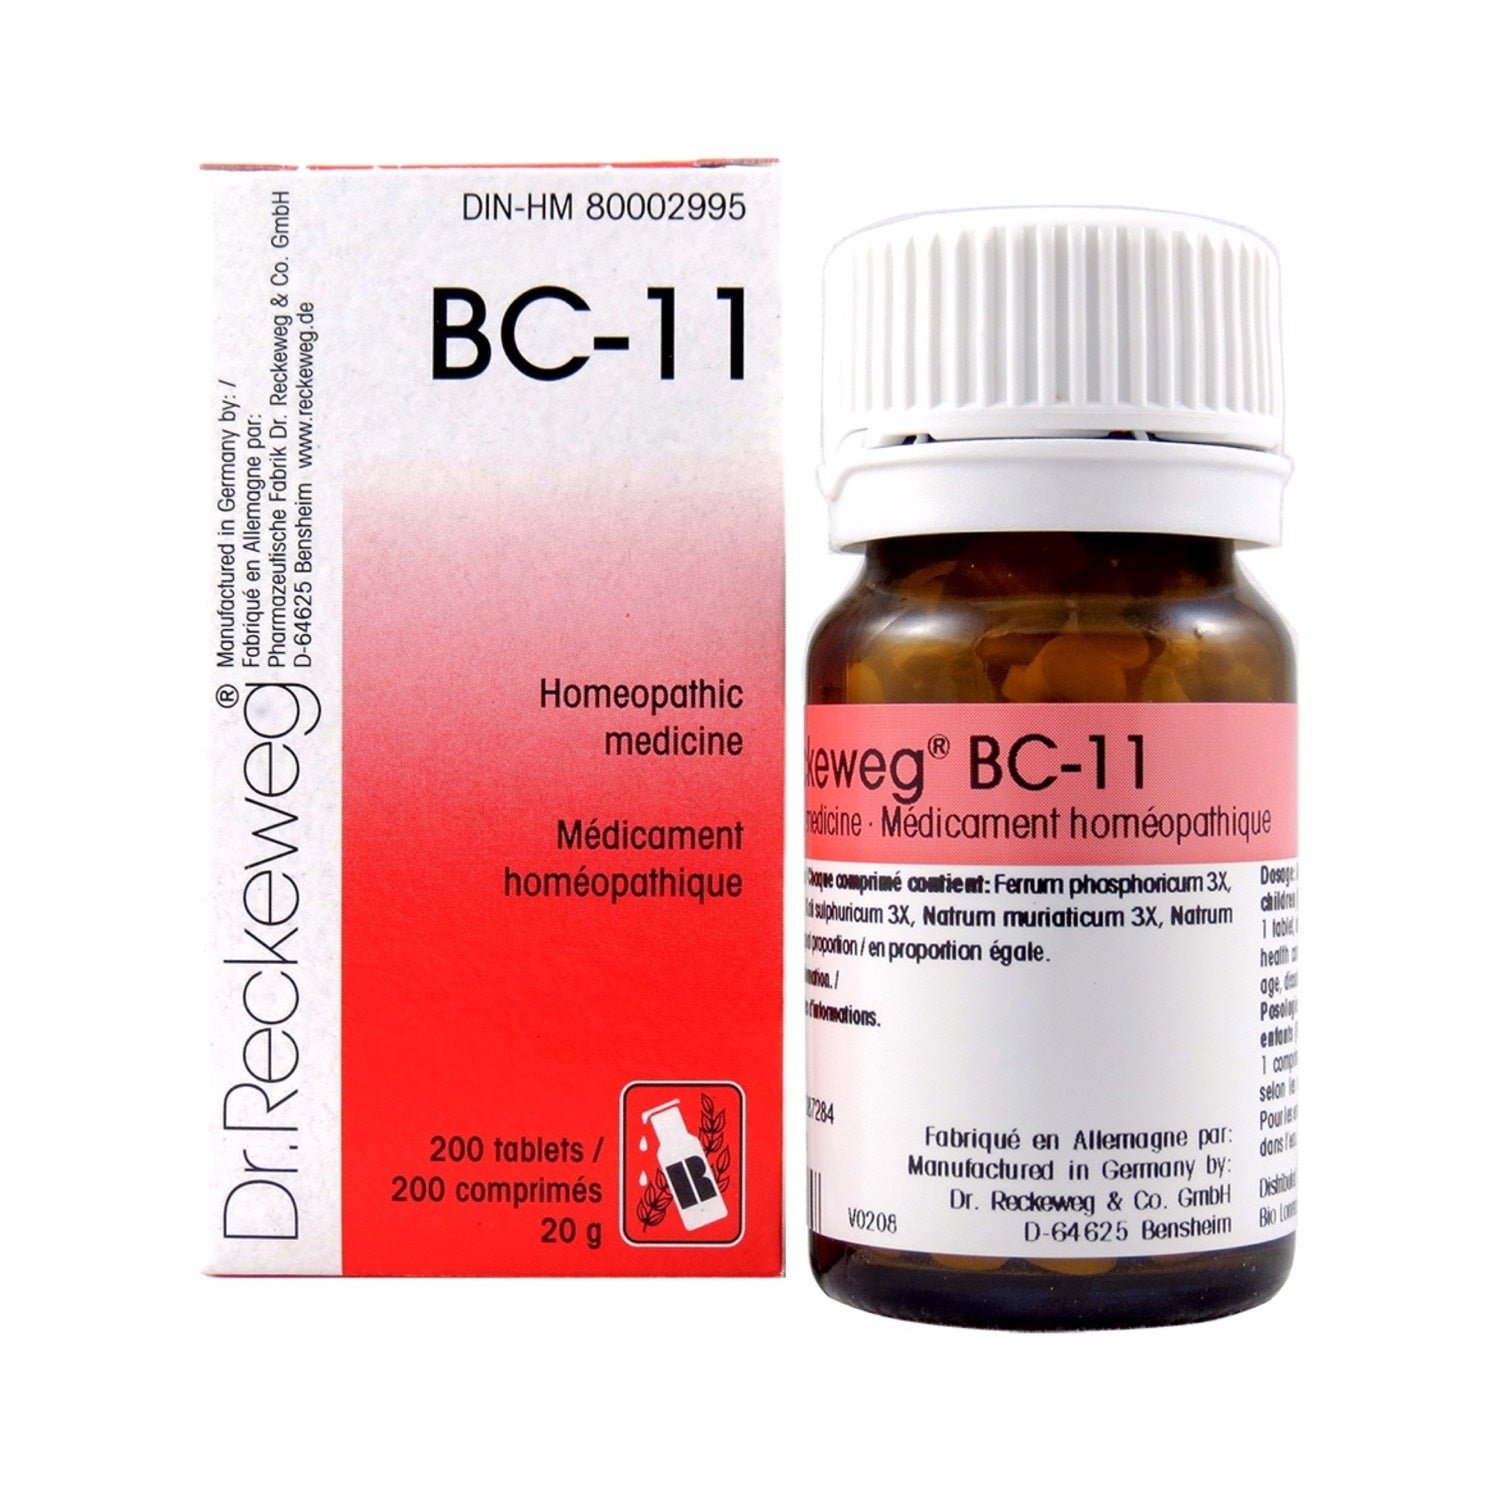 BC-11 Homeopathic medicine – Combination salt  200 tablets (20 g) - iwellnessbox